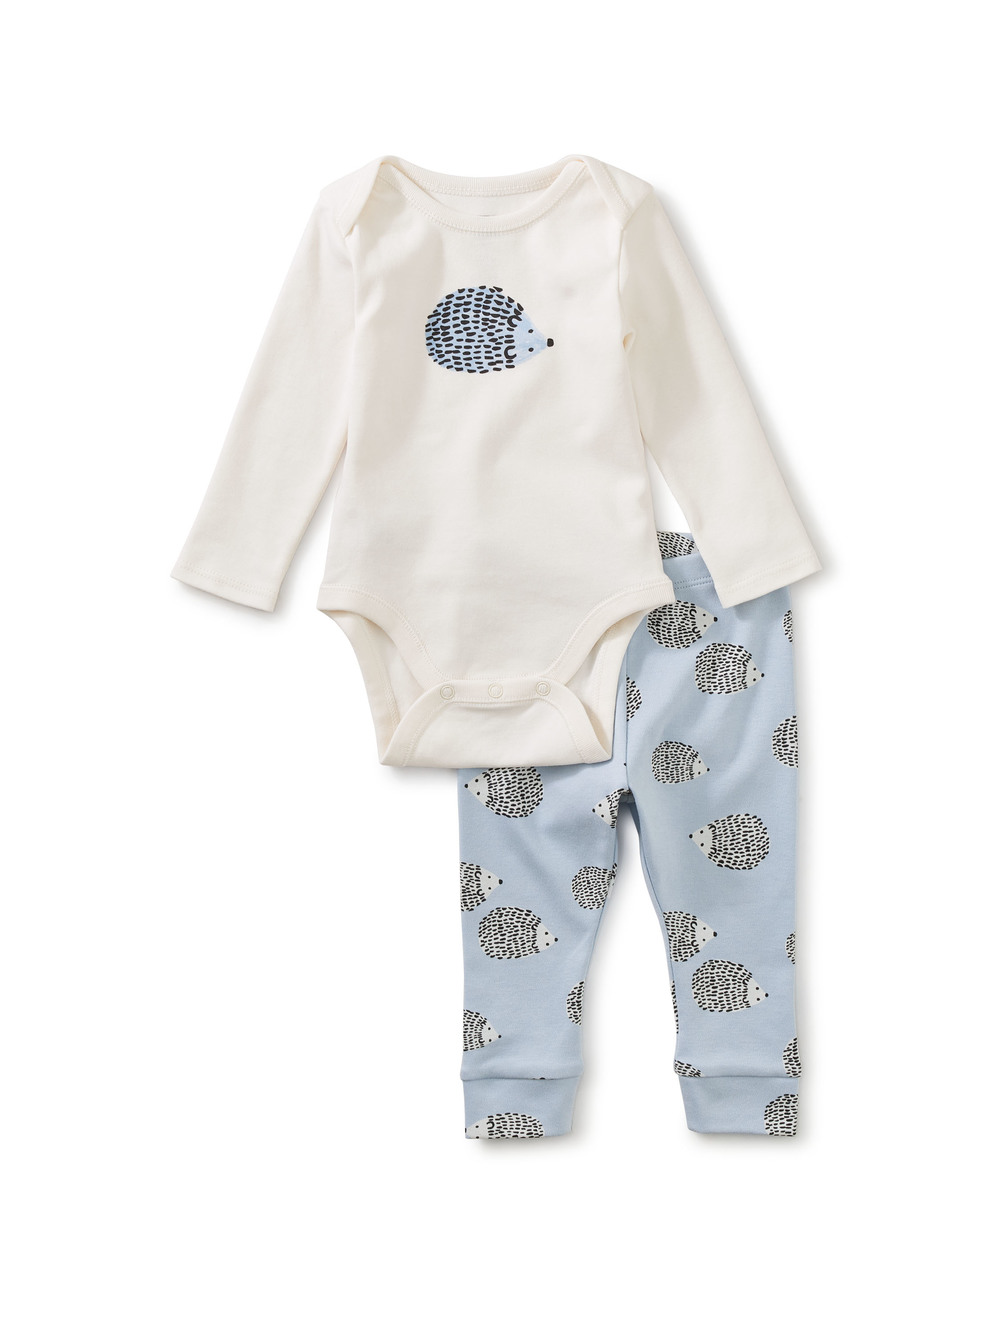 Baby Bodysuit Outfit